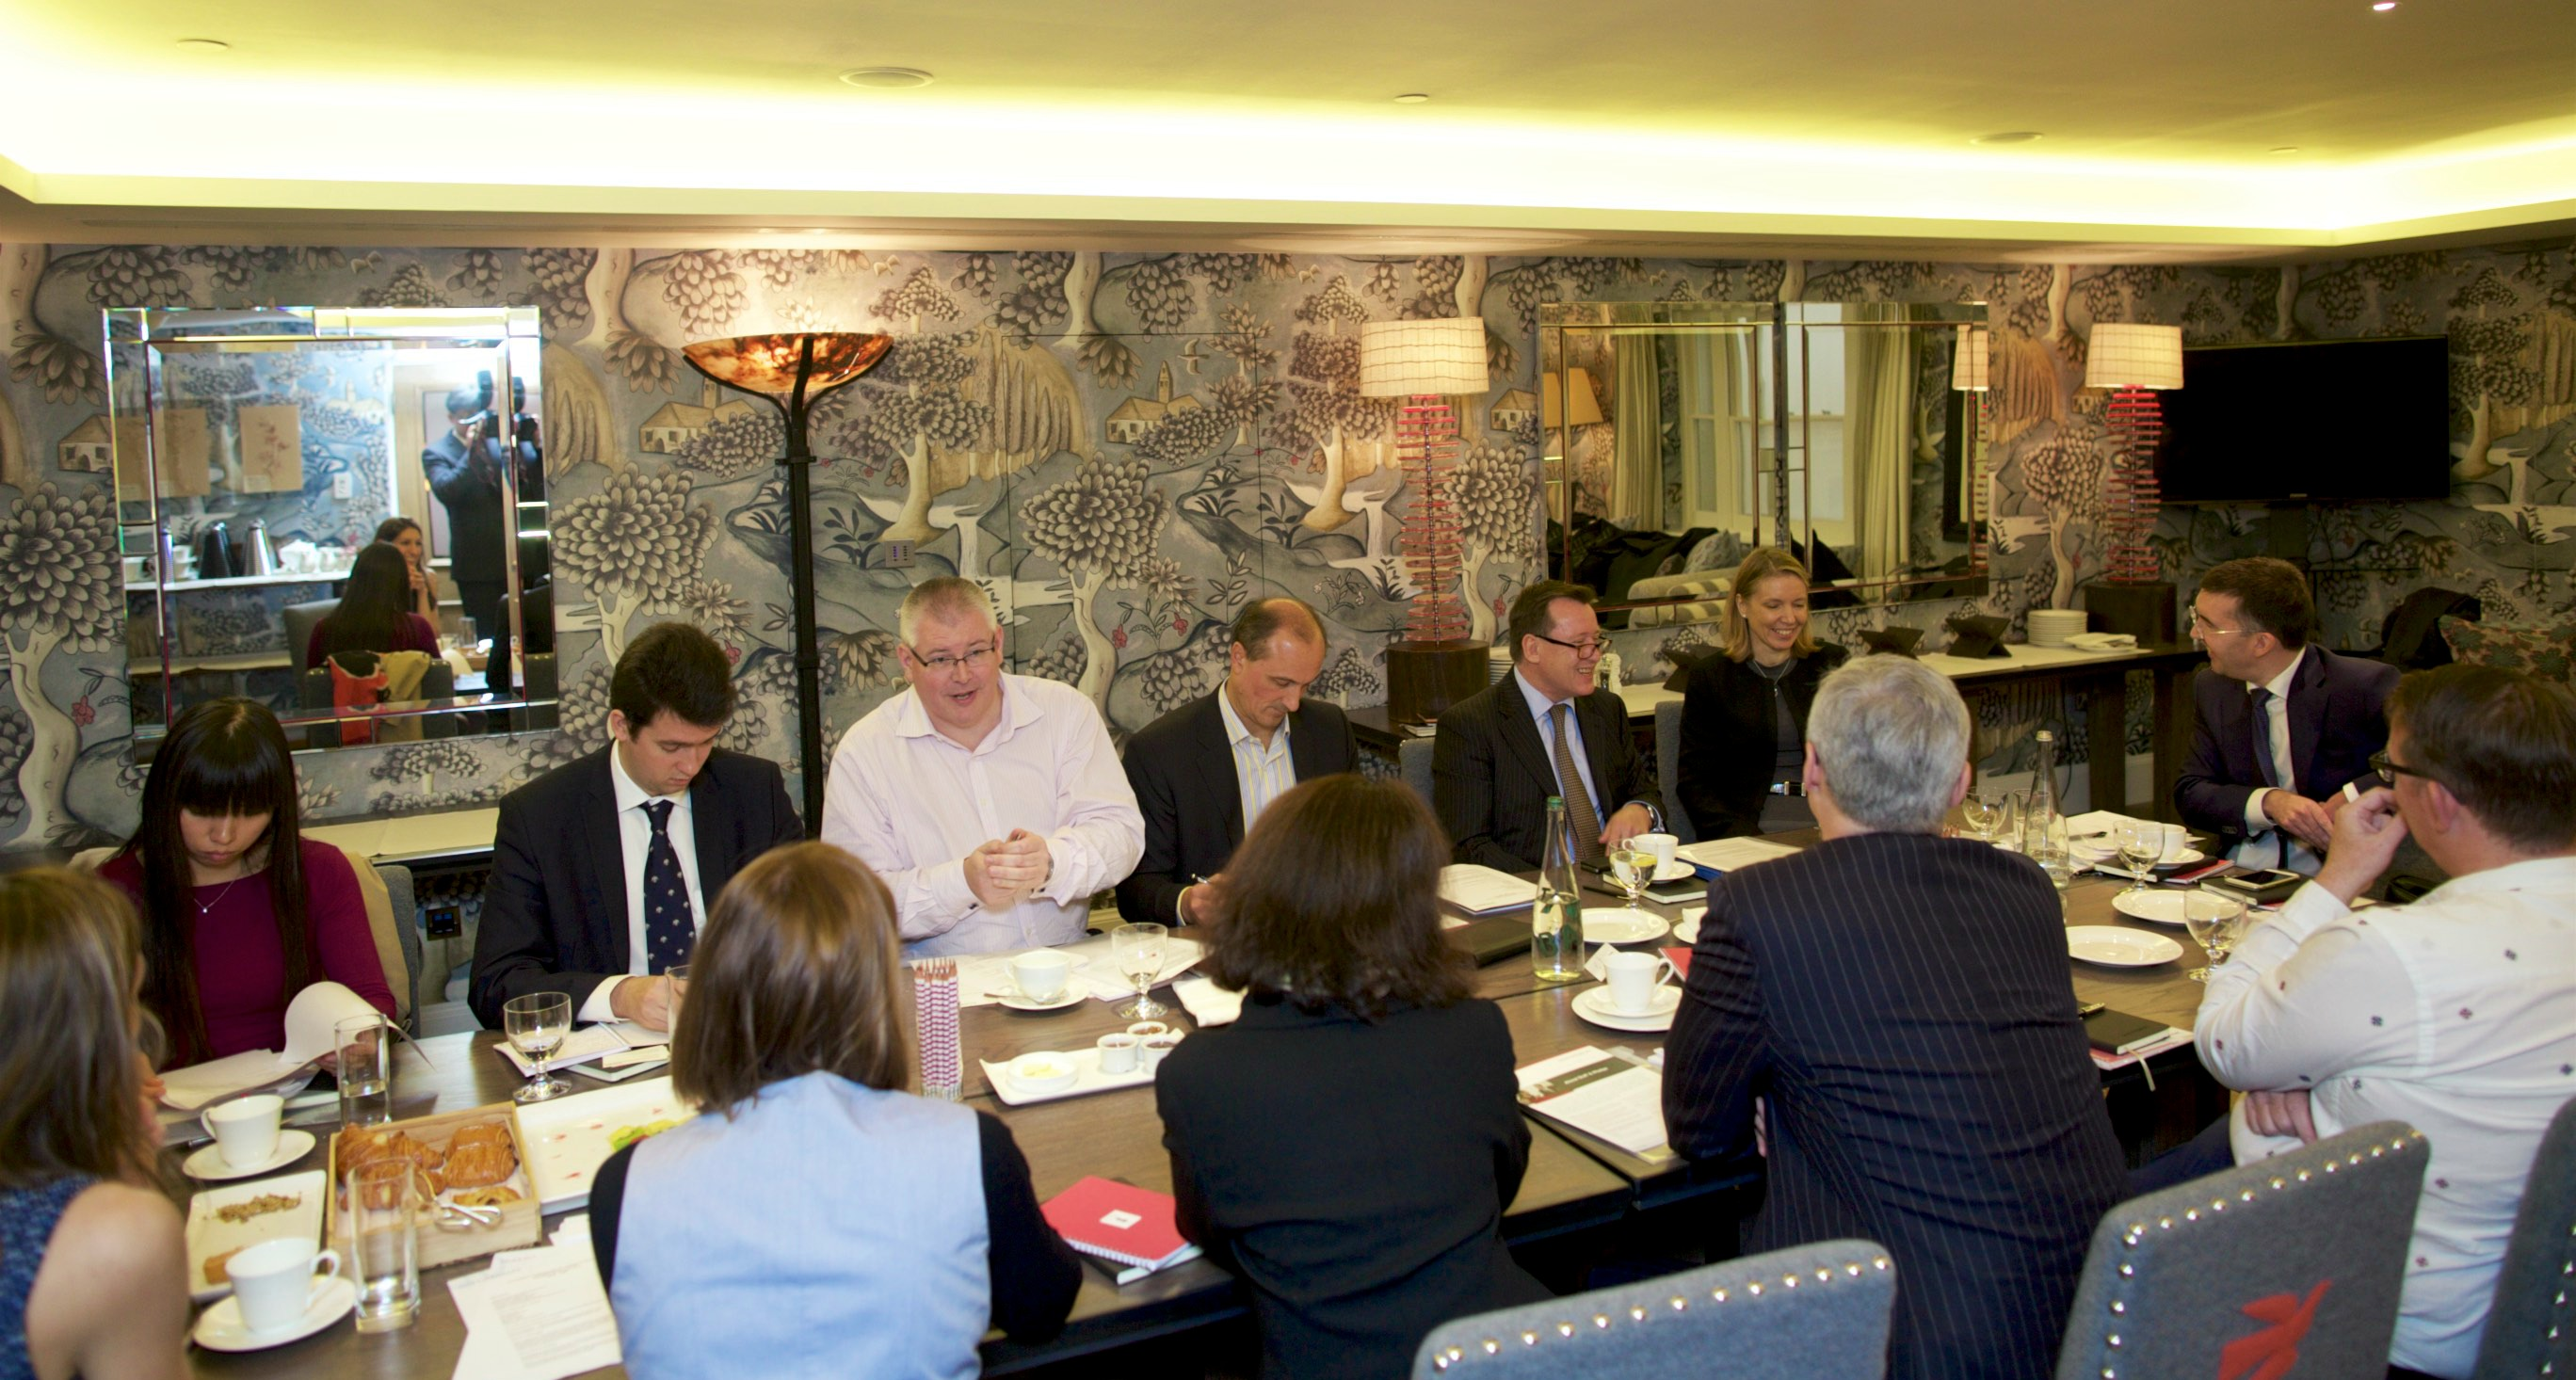 Legal consultancy services for multinational groups and transfer pricing advisers.